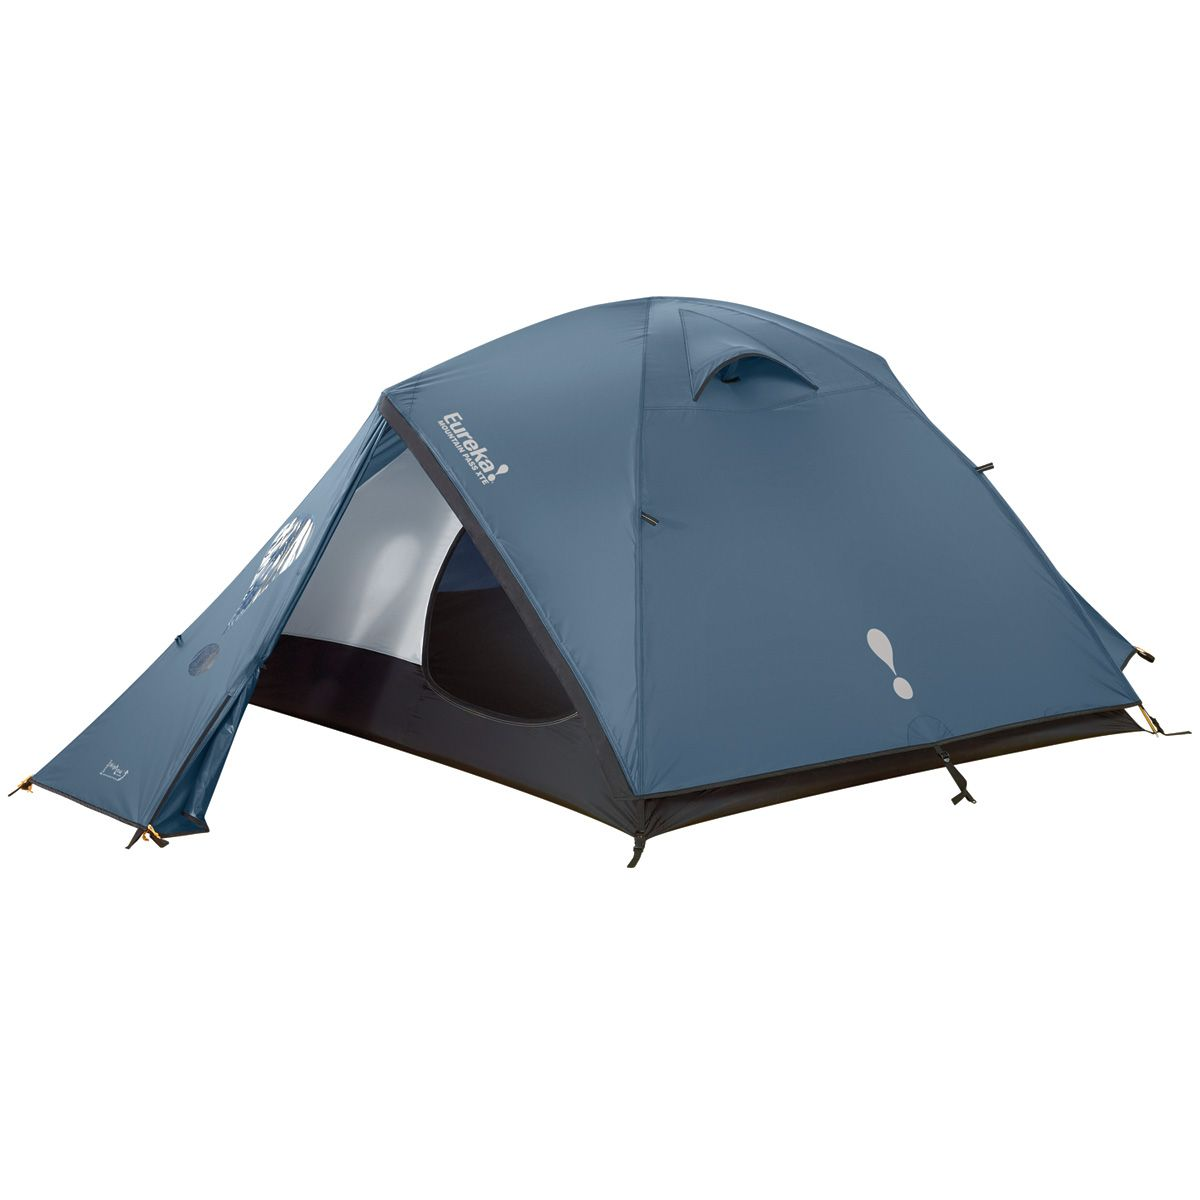 Design simplicity meets expedition standards. The best features of Eurekau0027s backcountry and expedition tents combine  sc 1 st  Pinterest & Design simplicity meets expedition standards. The best features of ...